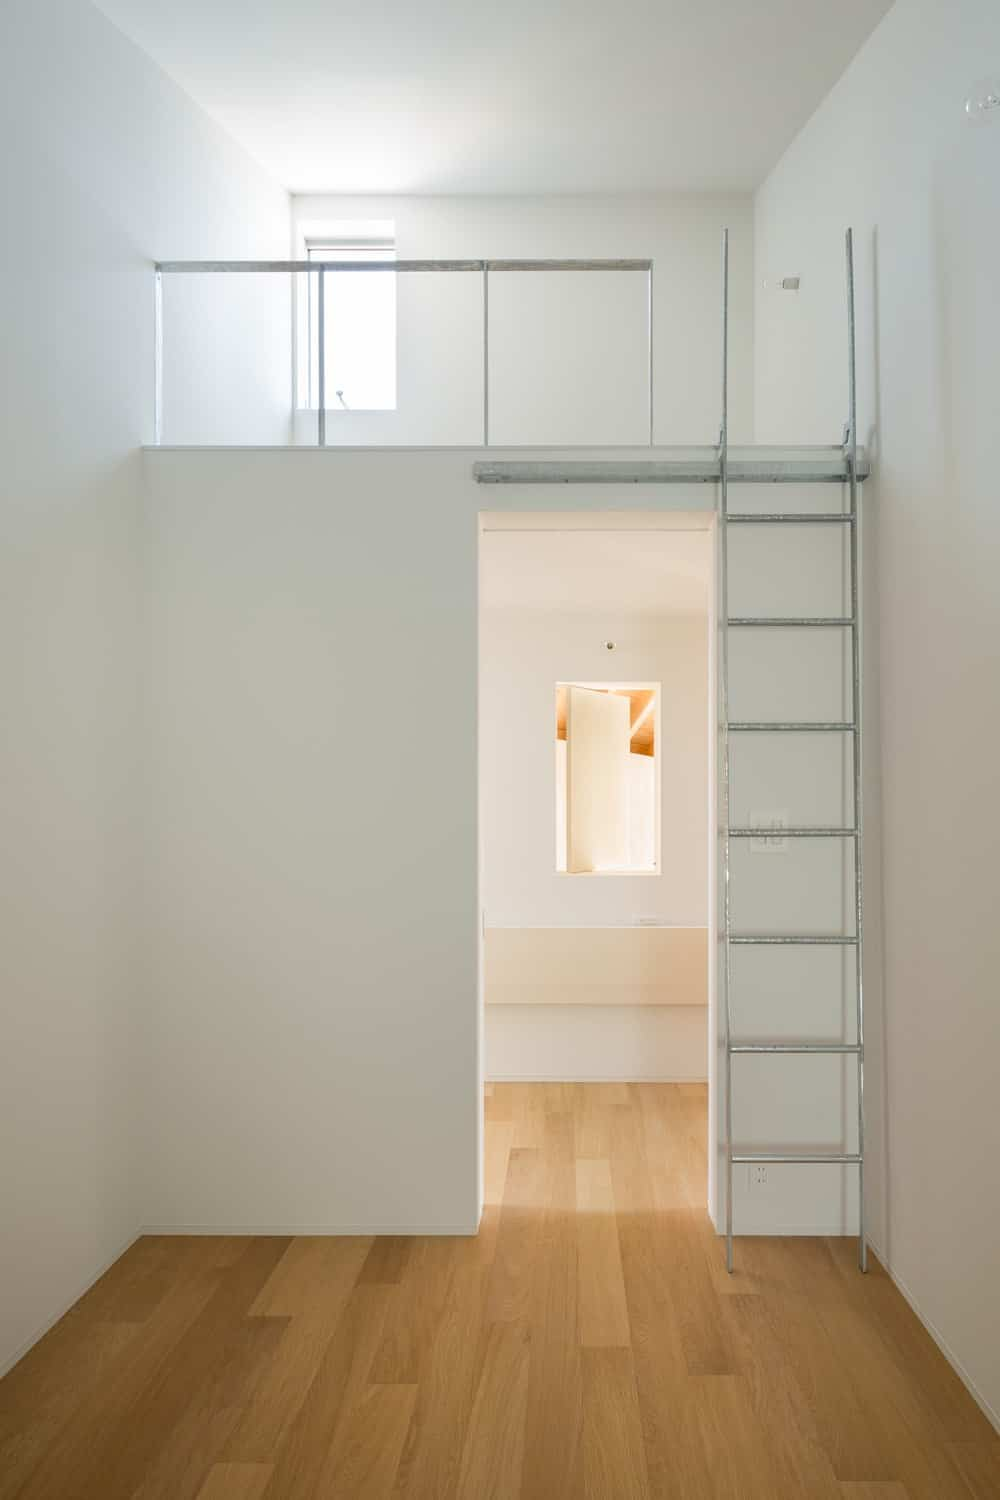 This bedroom has a space above the entryway for the bed that is accessed with a ladder to save space and maximize the vertical area.